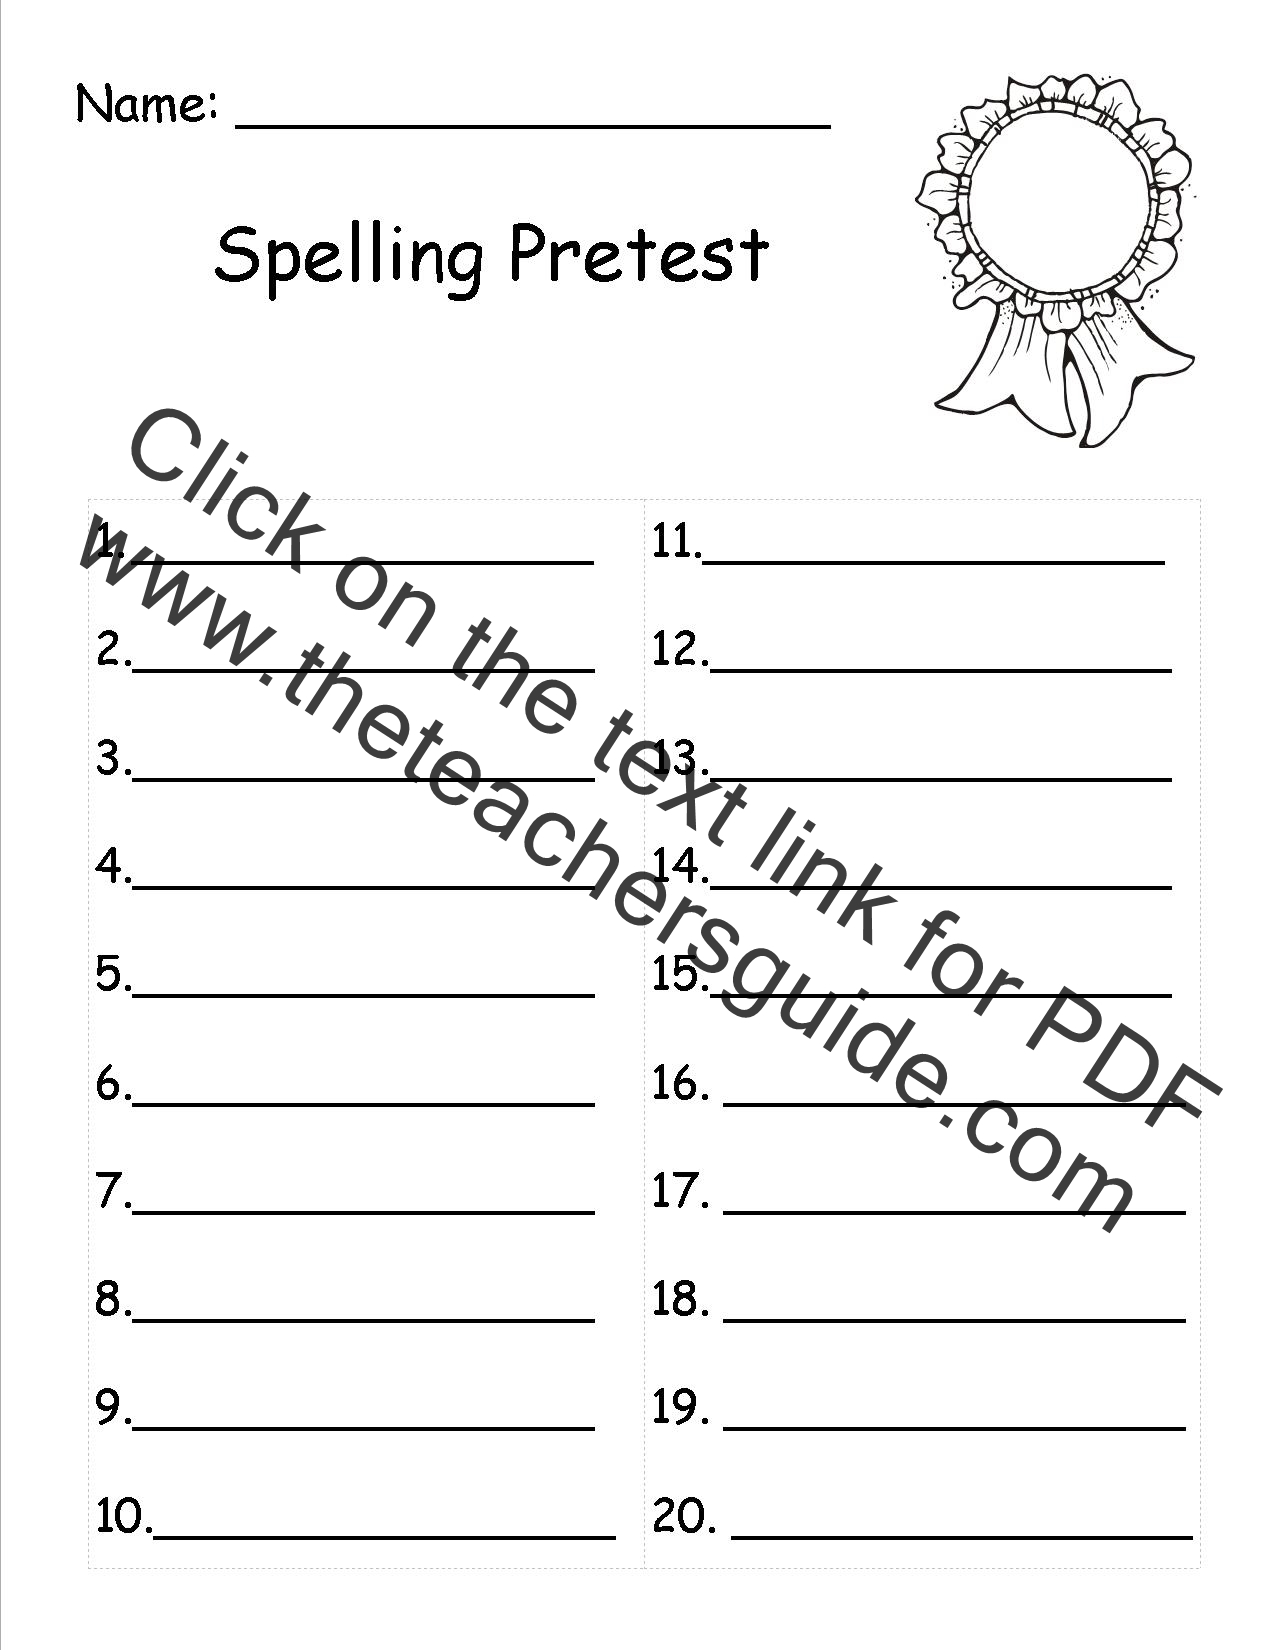 Worksheets 5th Grade Spelling Worksheets Atidentity